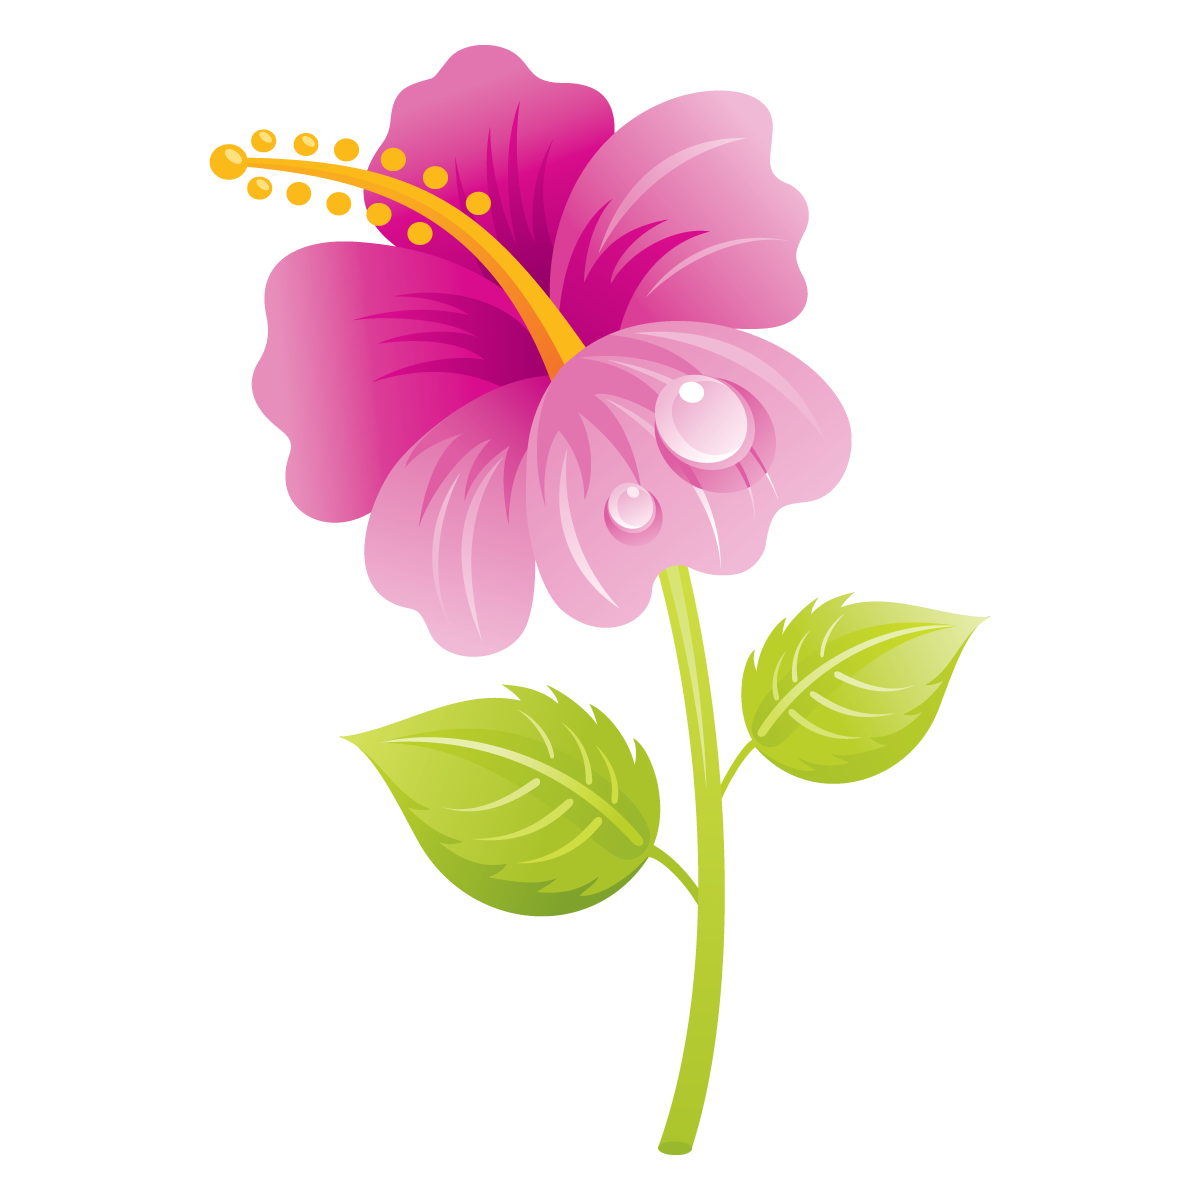 Mother's day flower clipart vector flowers png | buncee clipart mothers day flower | SYEDIMRAN ... vector